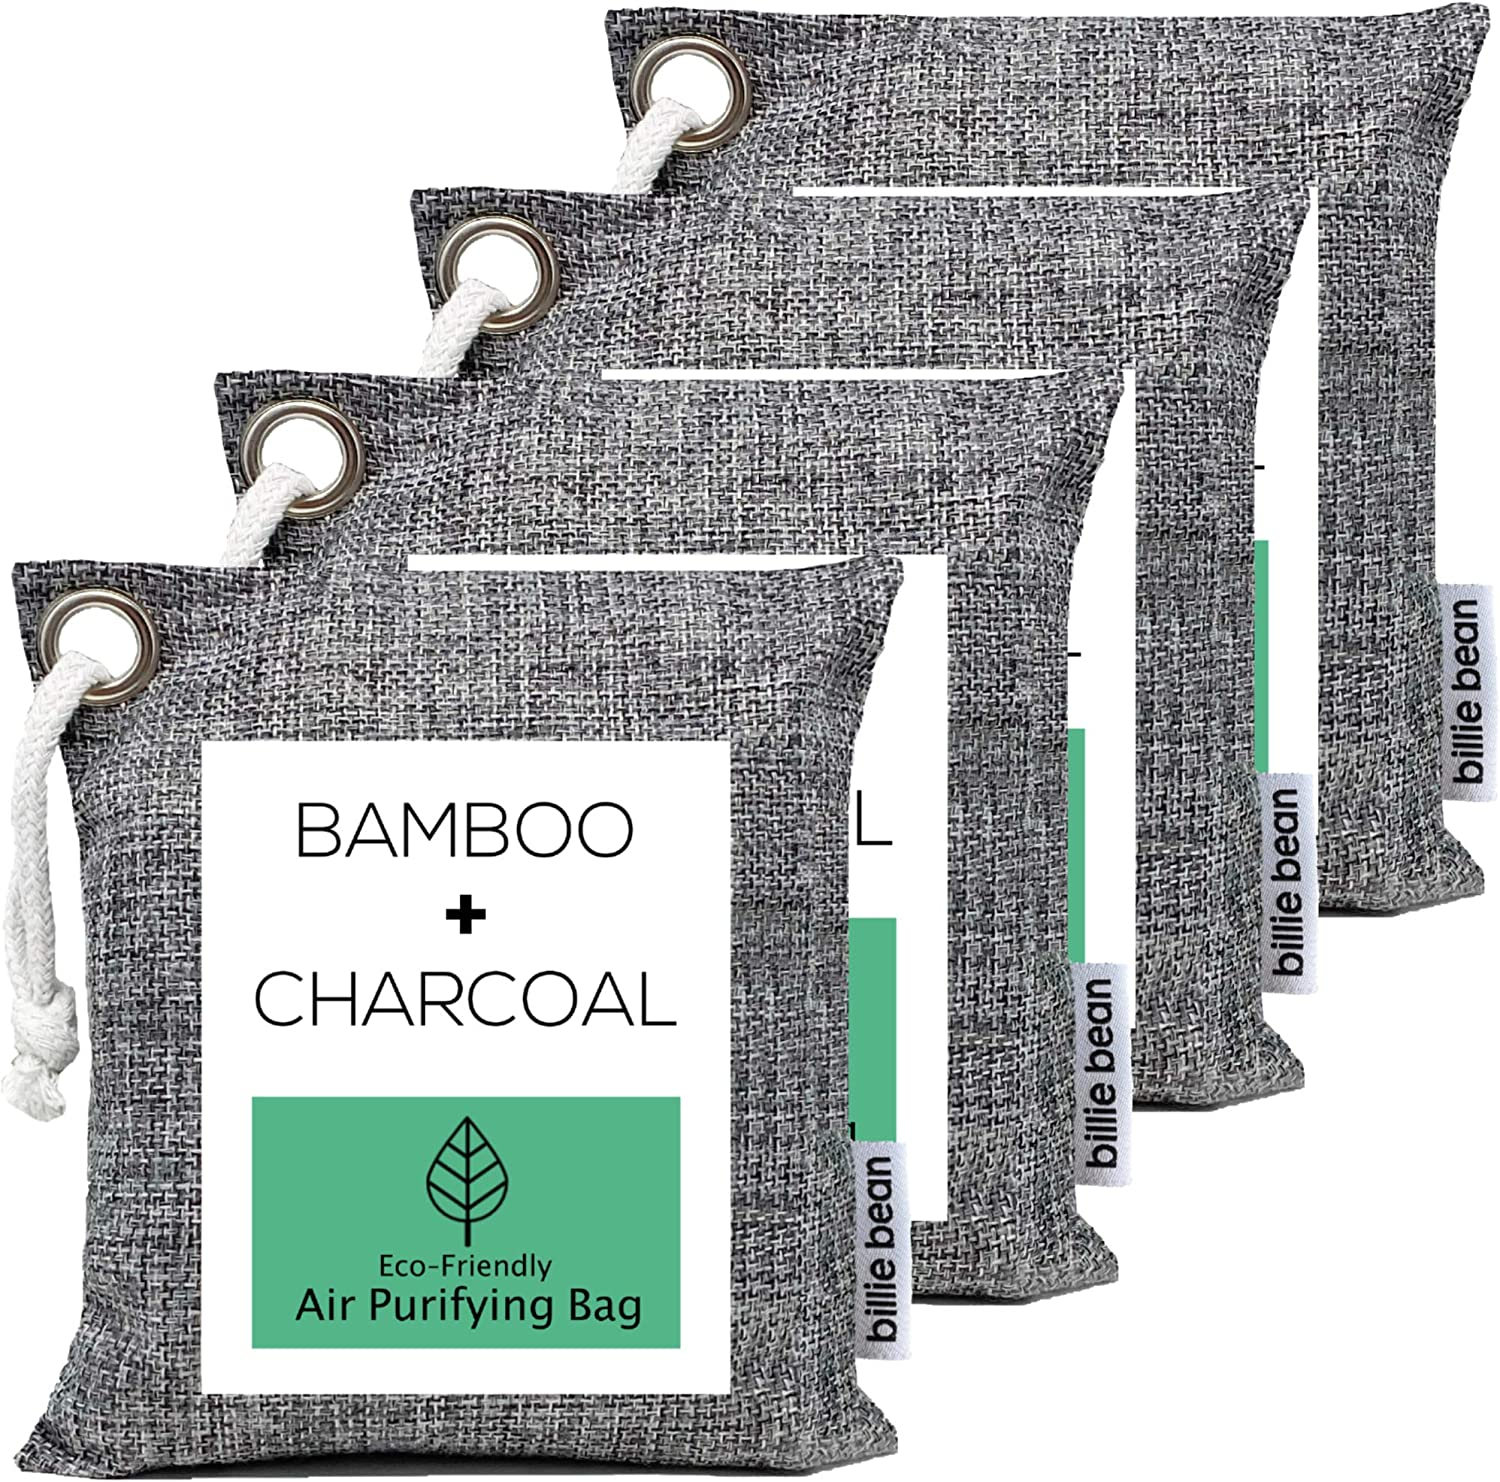 BILLIE BEAN Bamboo Charcoal Air Purifying Bags (4 Pack, 200g each) - Natural Fresh Air with Our Activated Charcoal Bags Odor Absorber - Odor Eliminator and Air Freshener for Home, Car, Pets, Closets